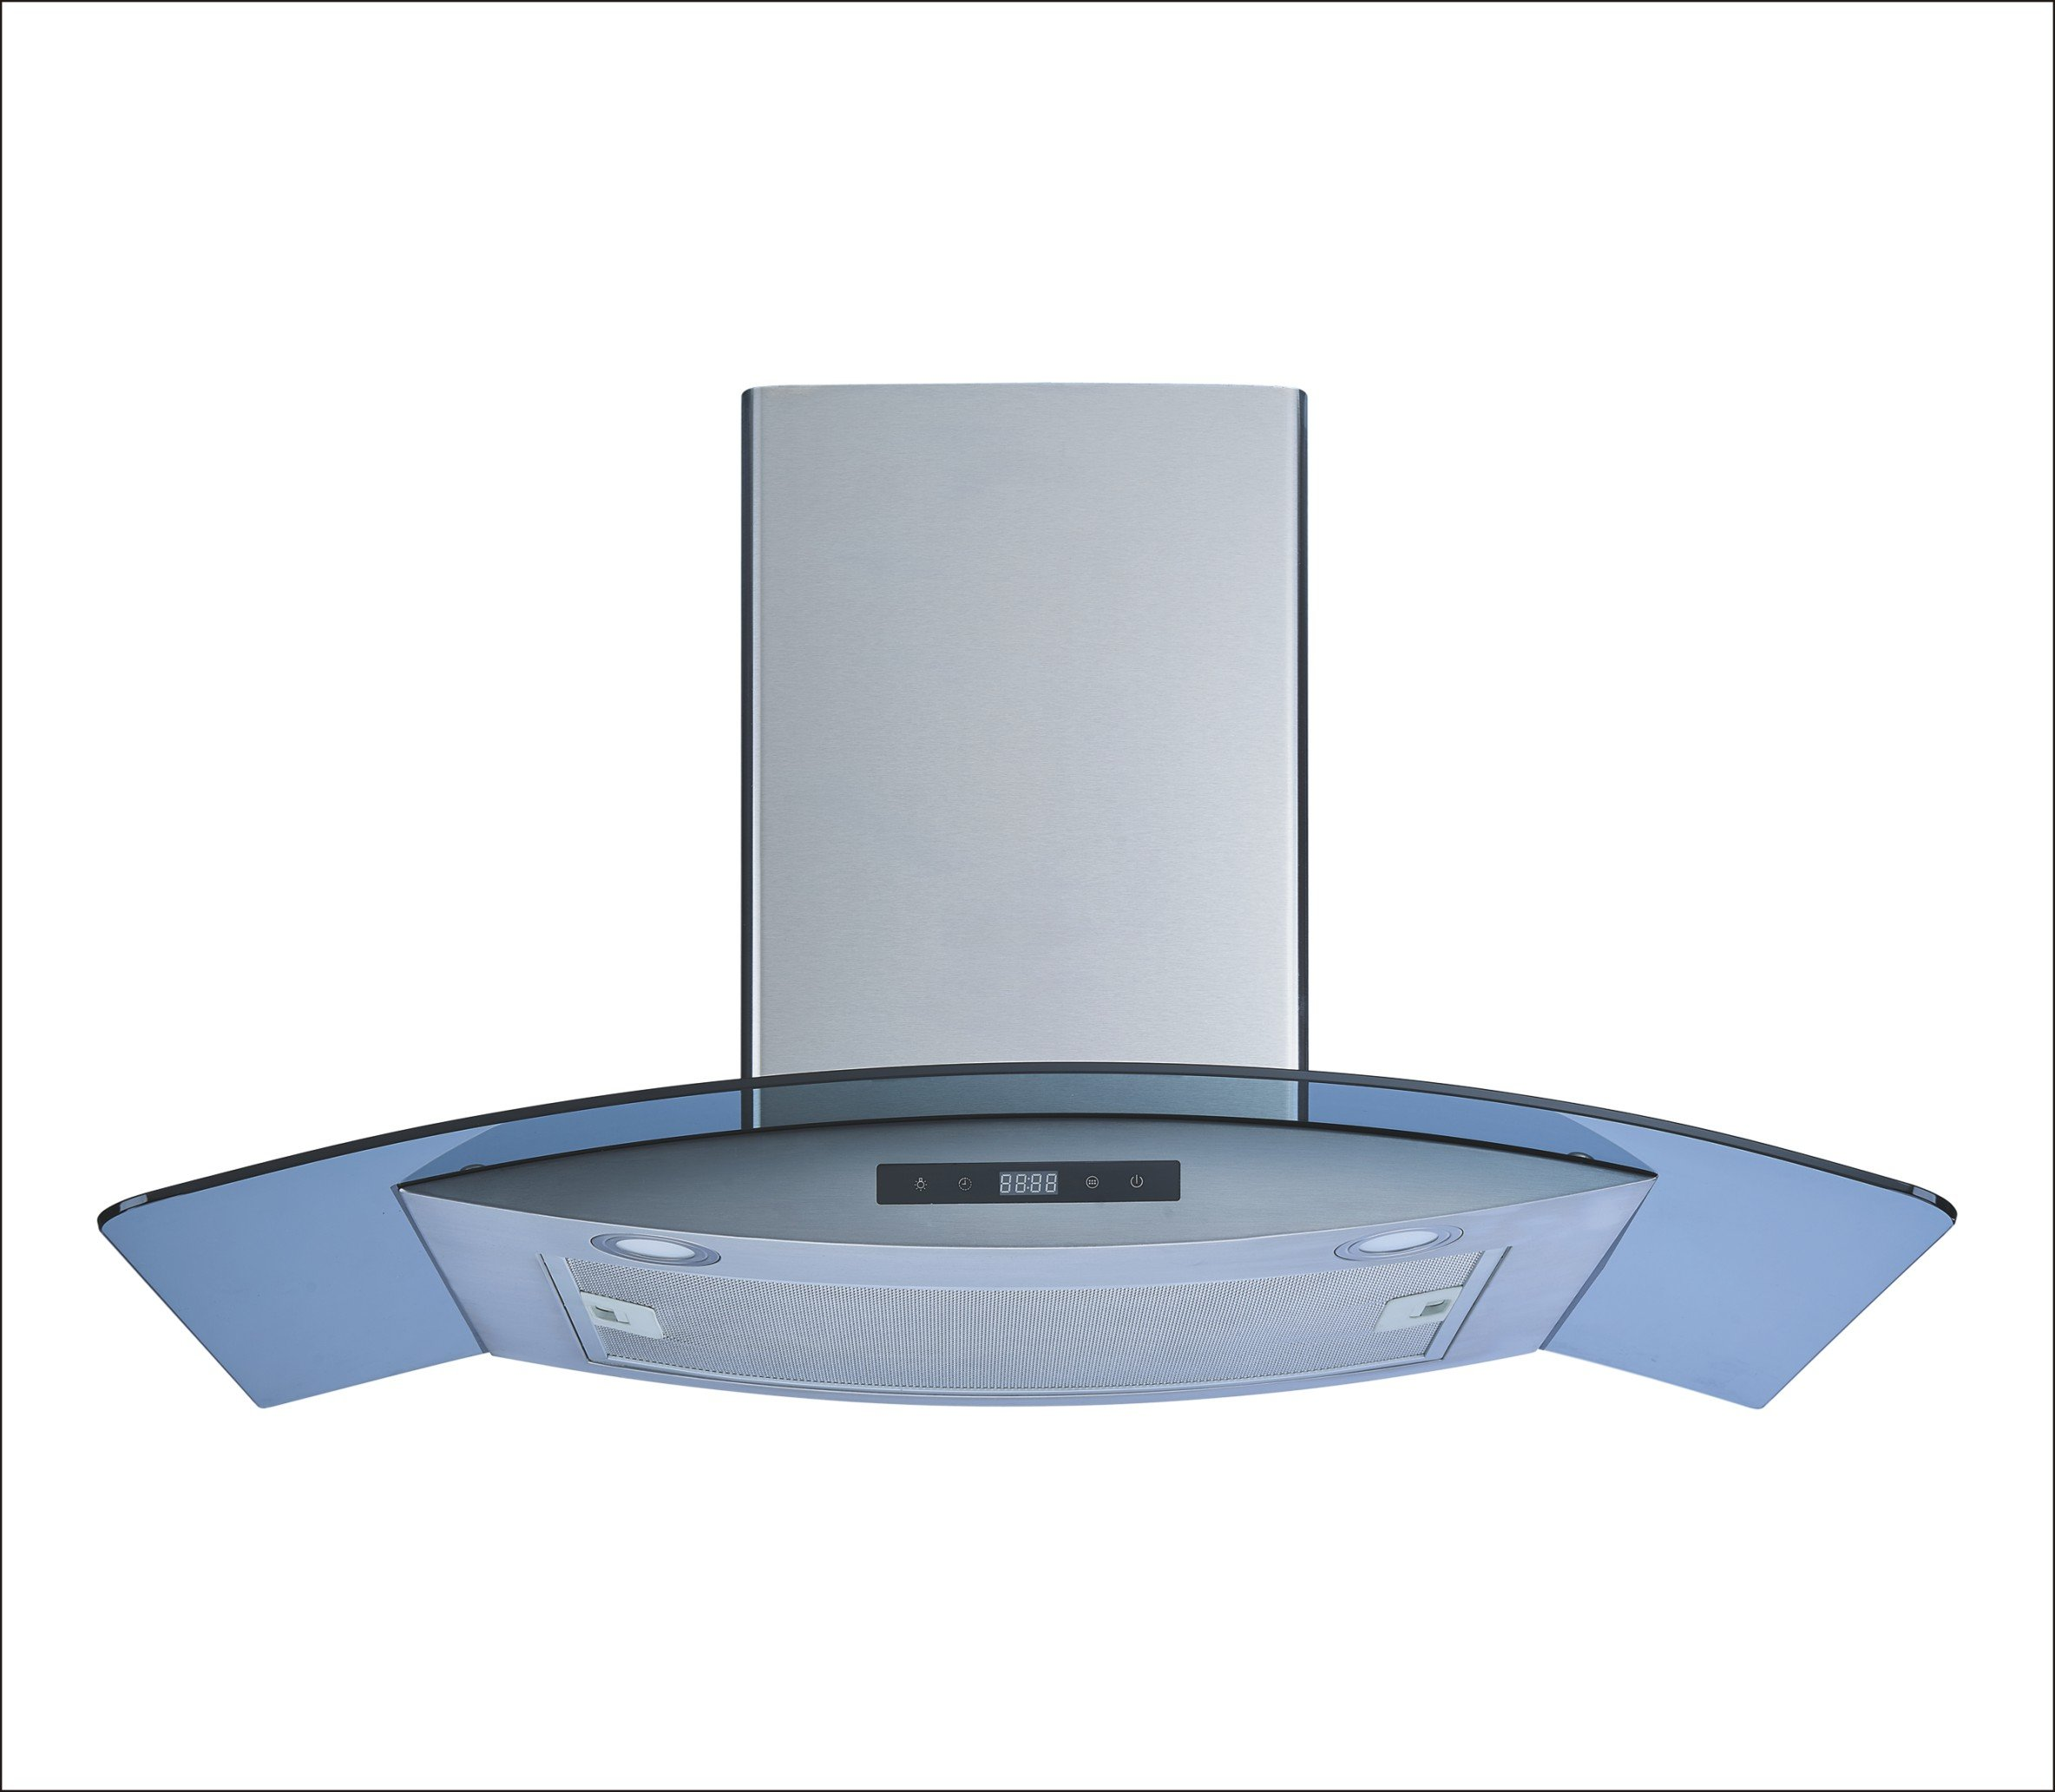 Winflo 30'' Wall Mount Stainless Steel/Arched Tempered Glass Convertible Kitchen Range Hood with Touch Control, Aluminum Filter and LED Lights by Winflo